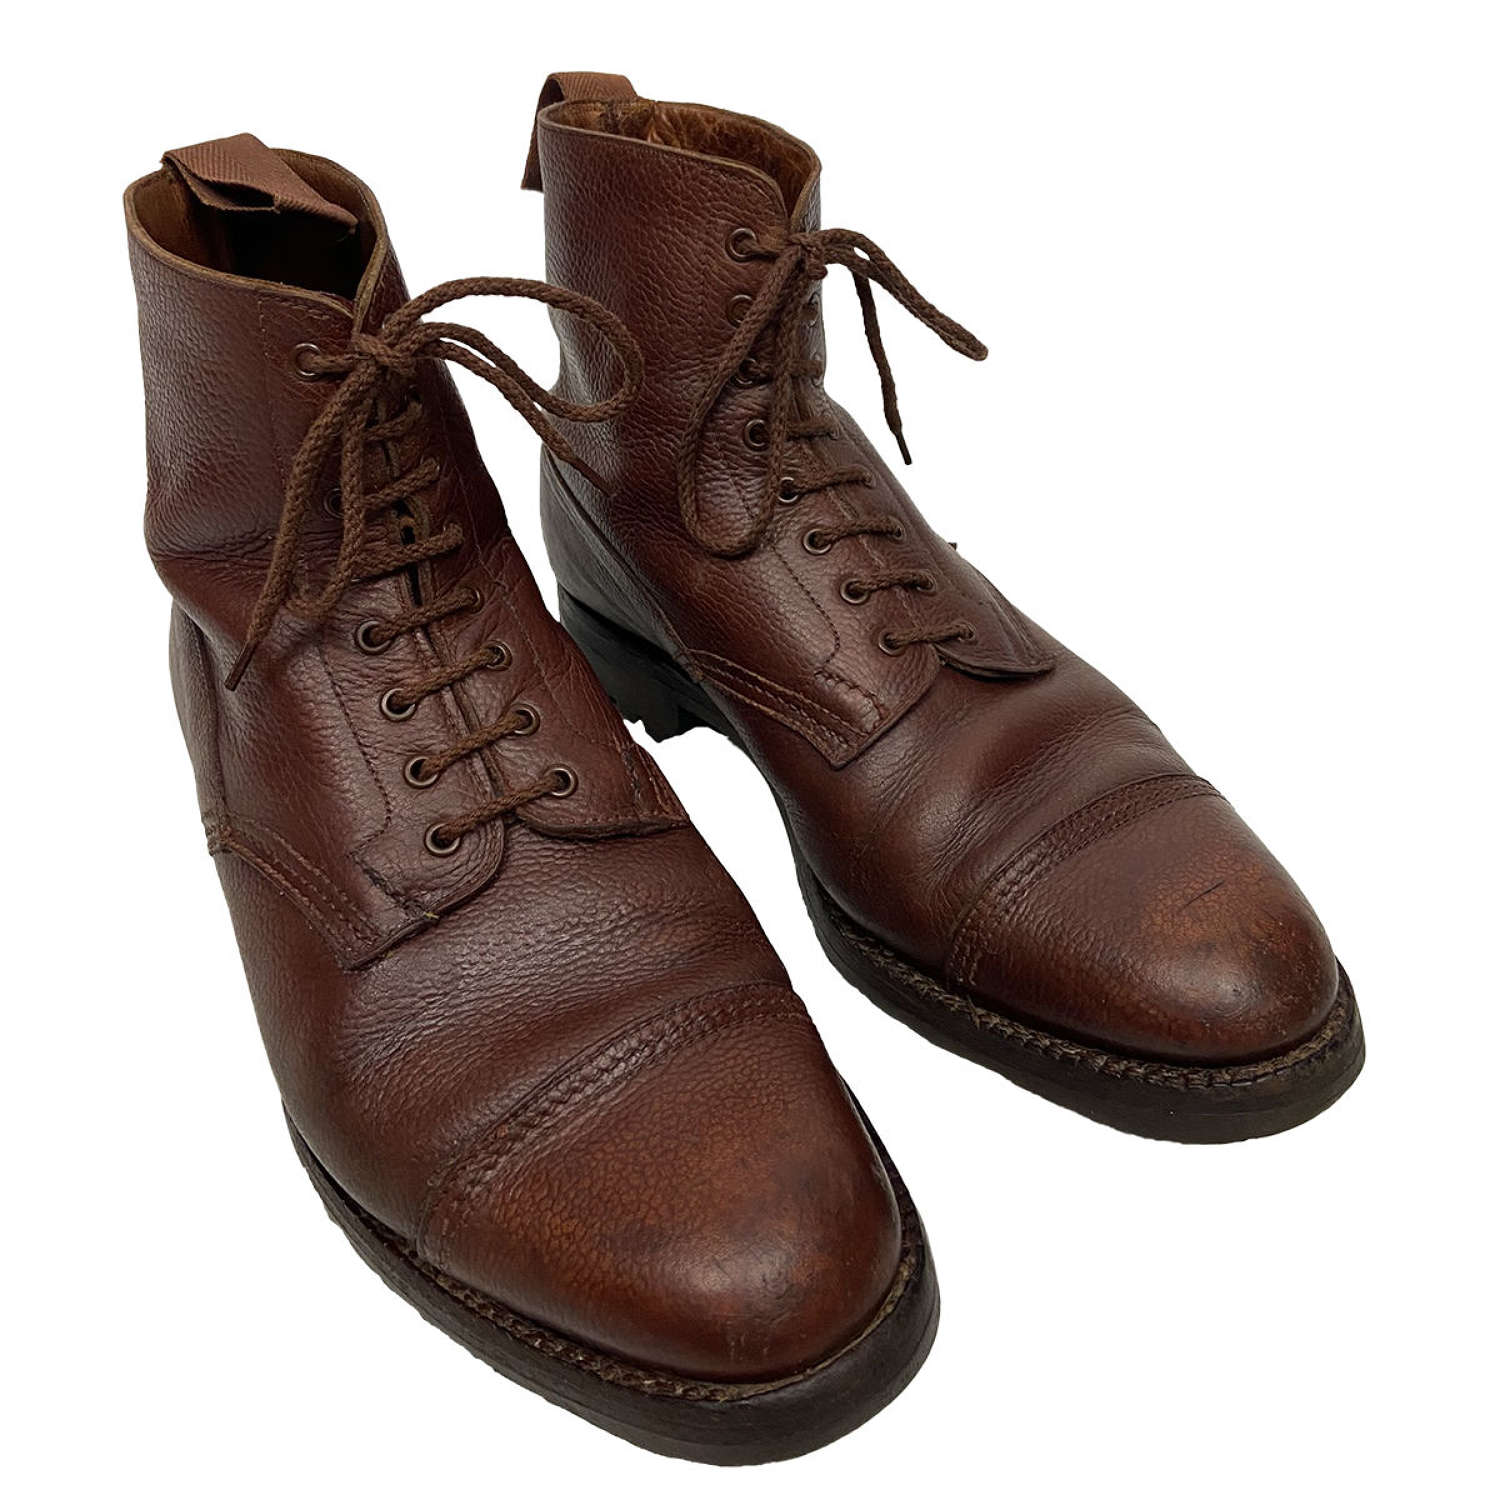 Original 1943 Dated British Army Officers Ankle Boots by'Moccasin'